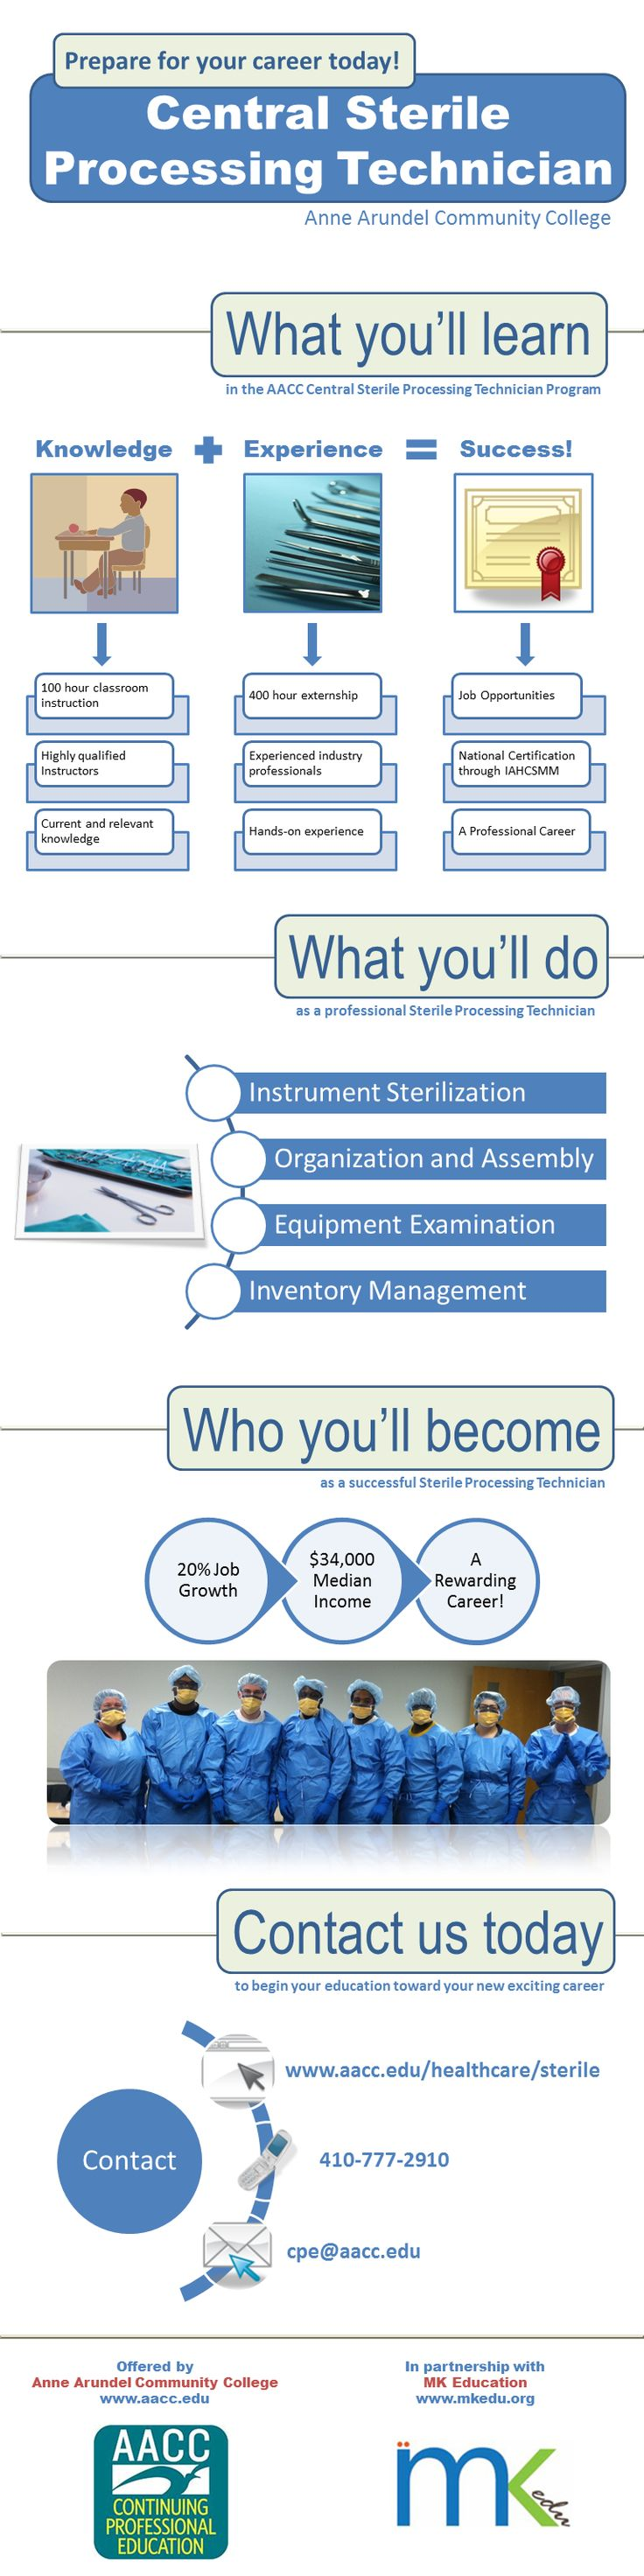 Central sterile processing technicianthis is what im